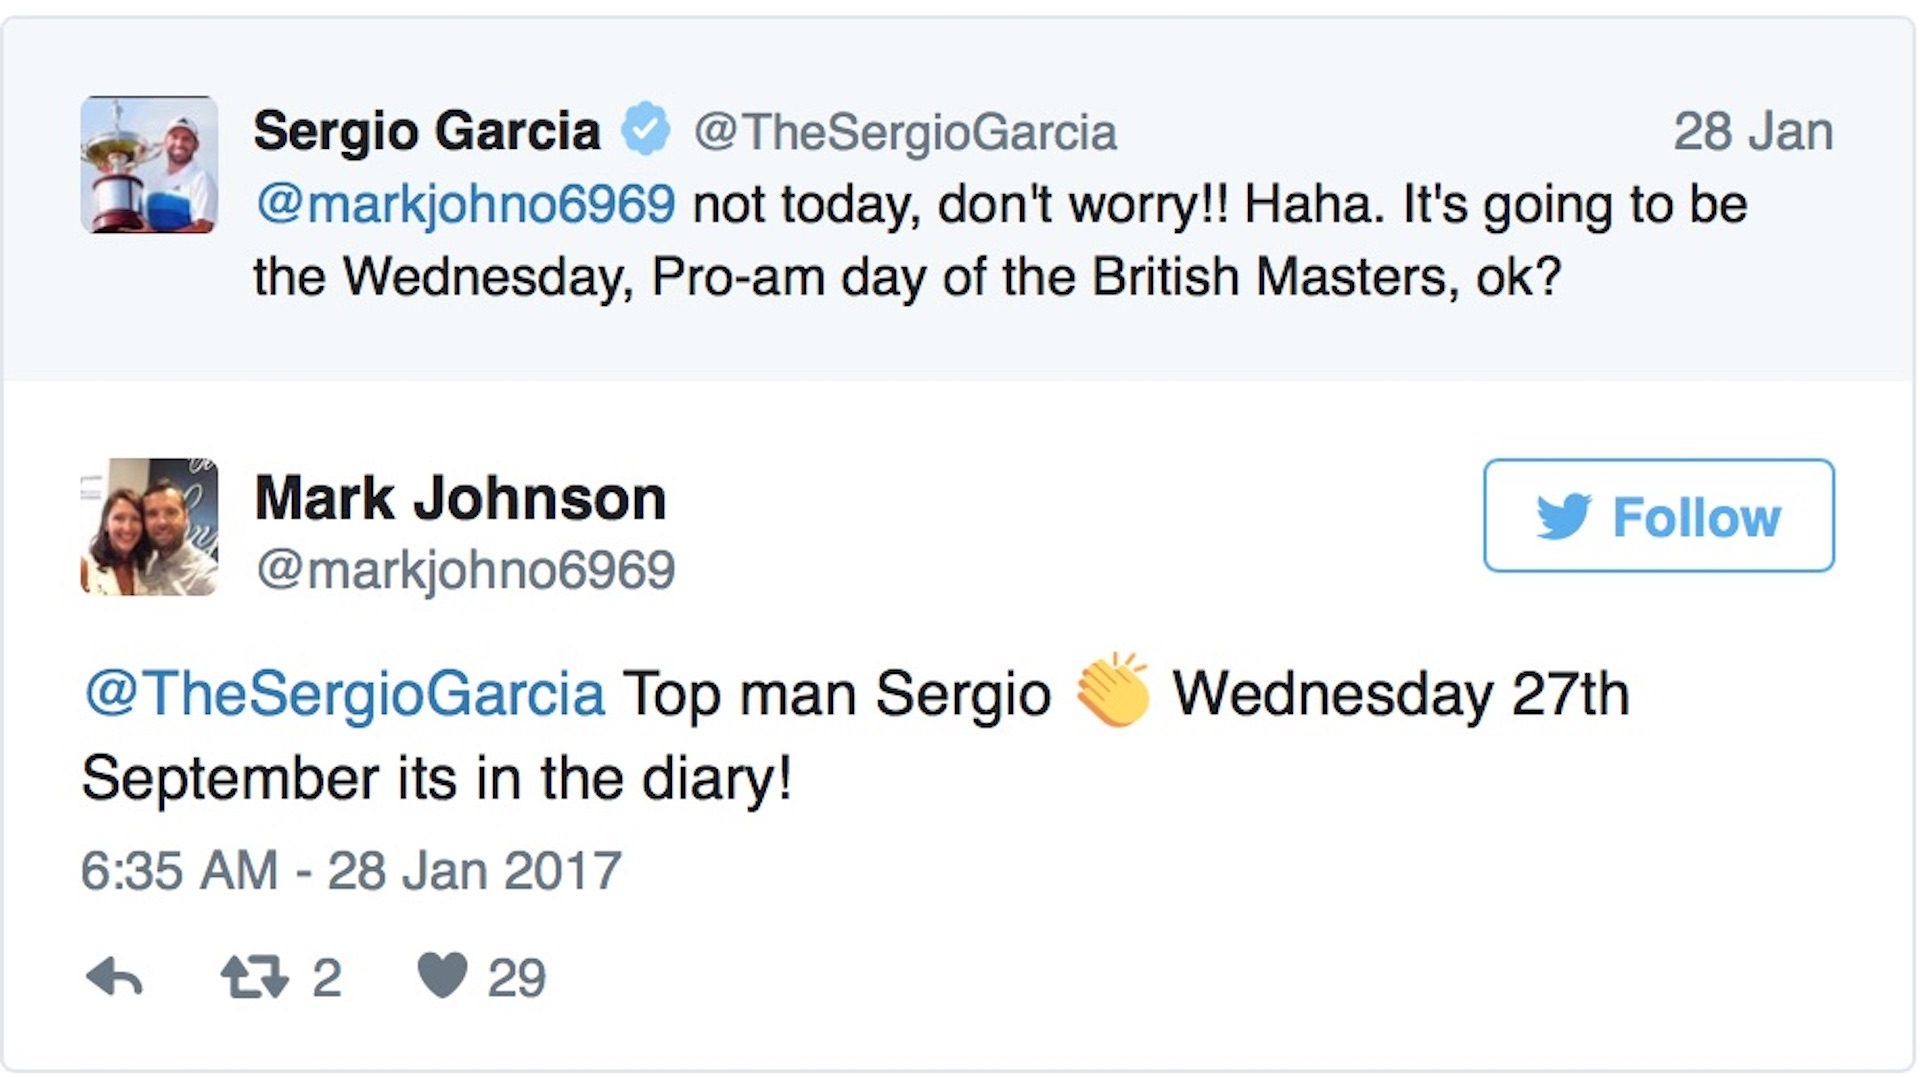 Persistence pays for Sergio fan